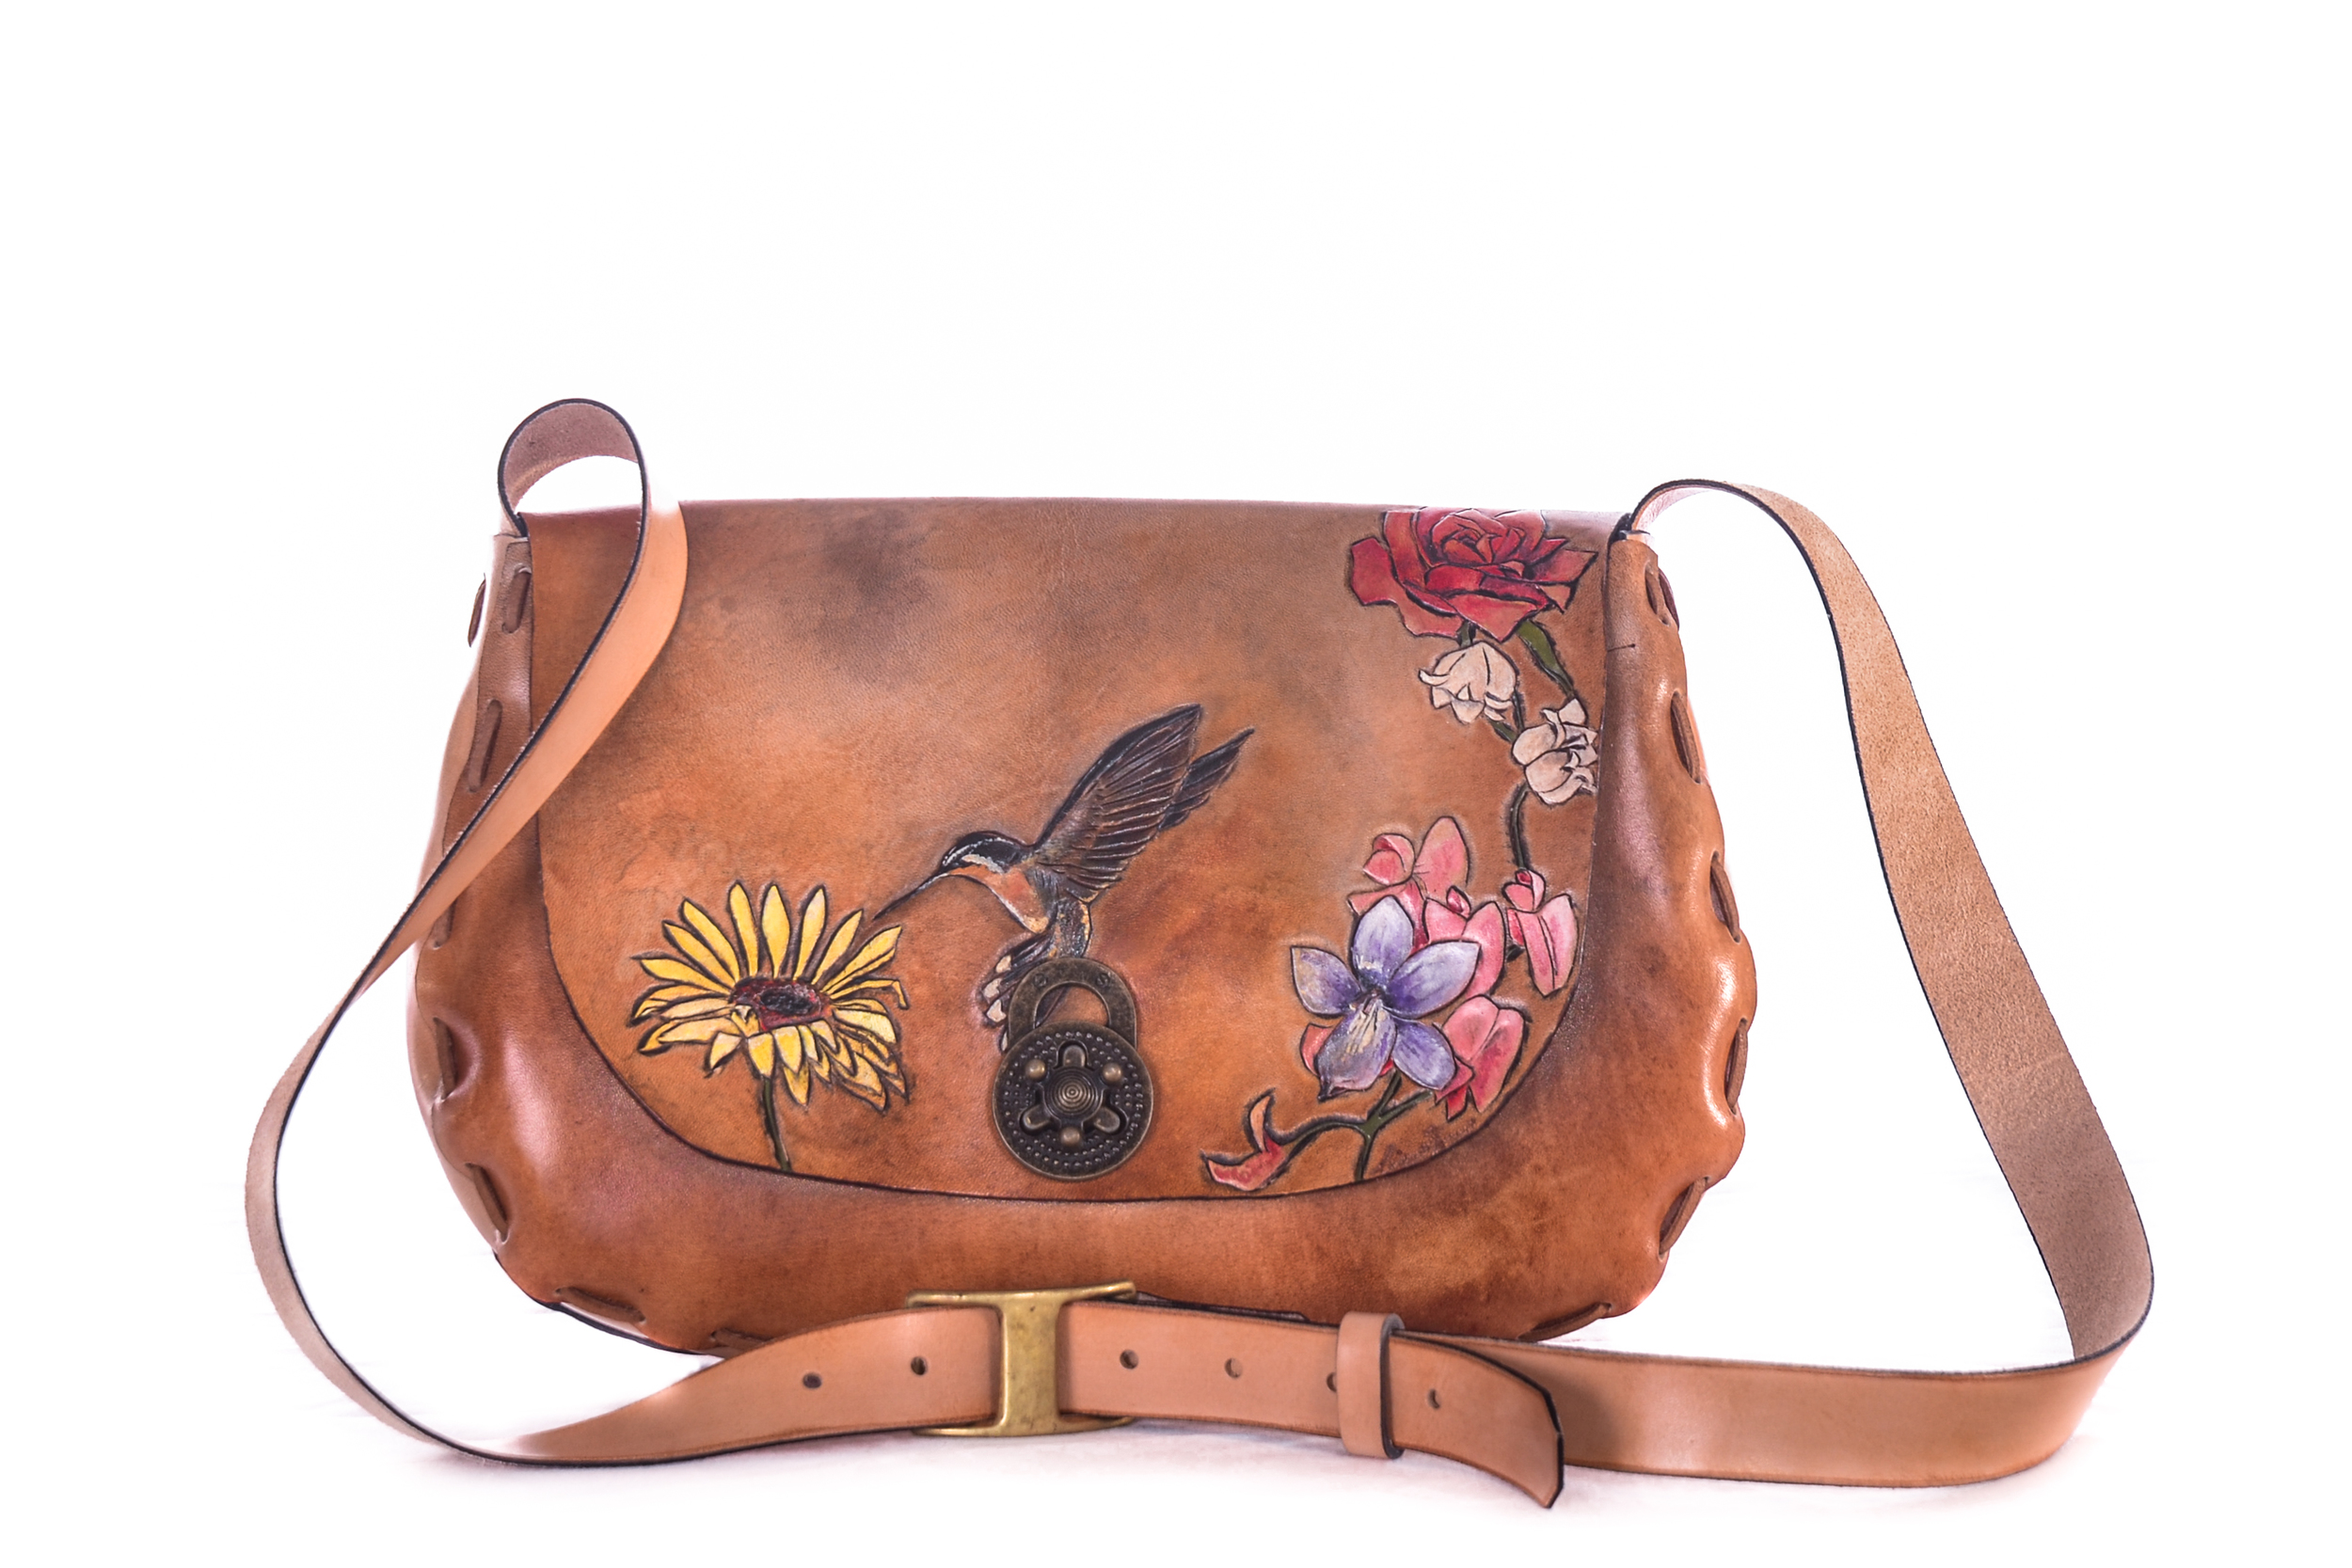 Hummingbird and flowers leather purse